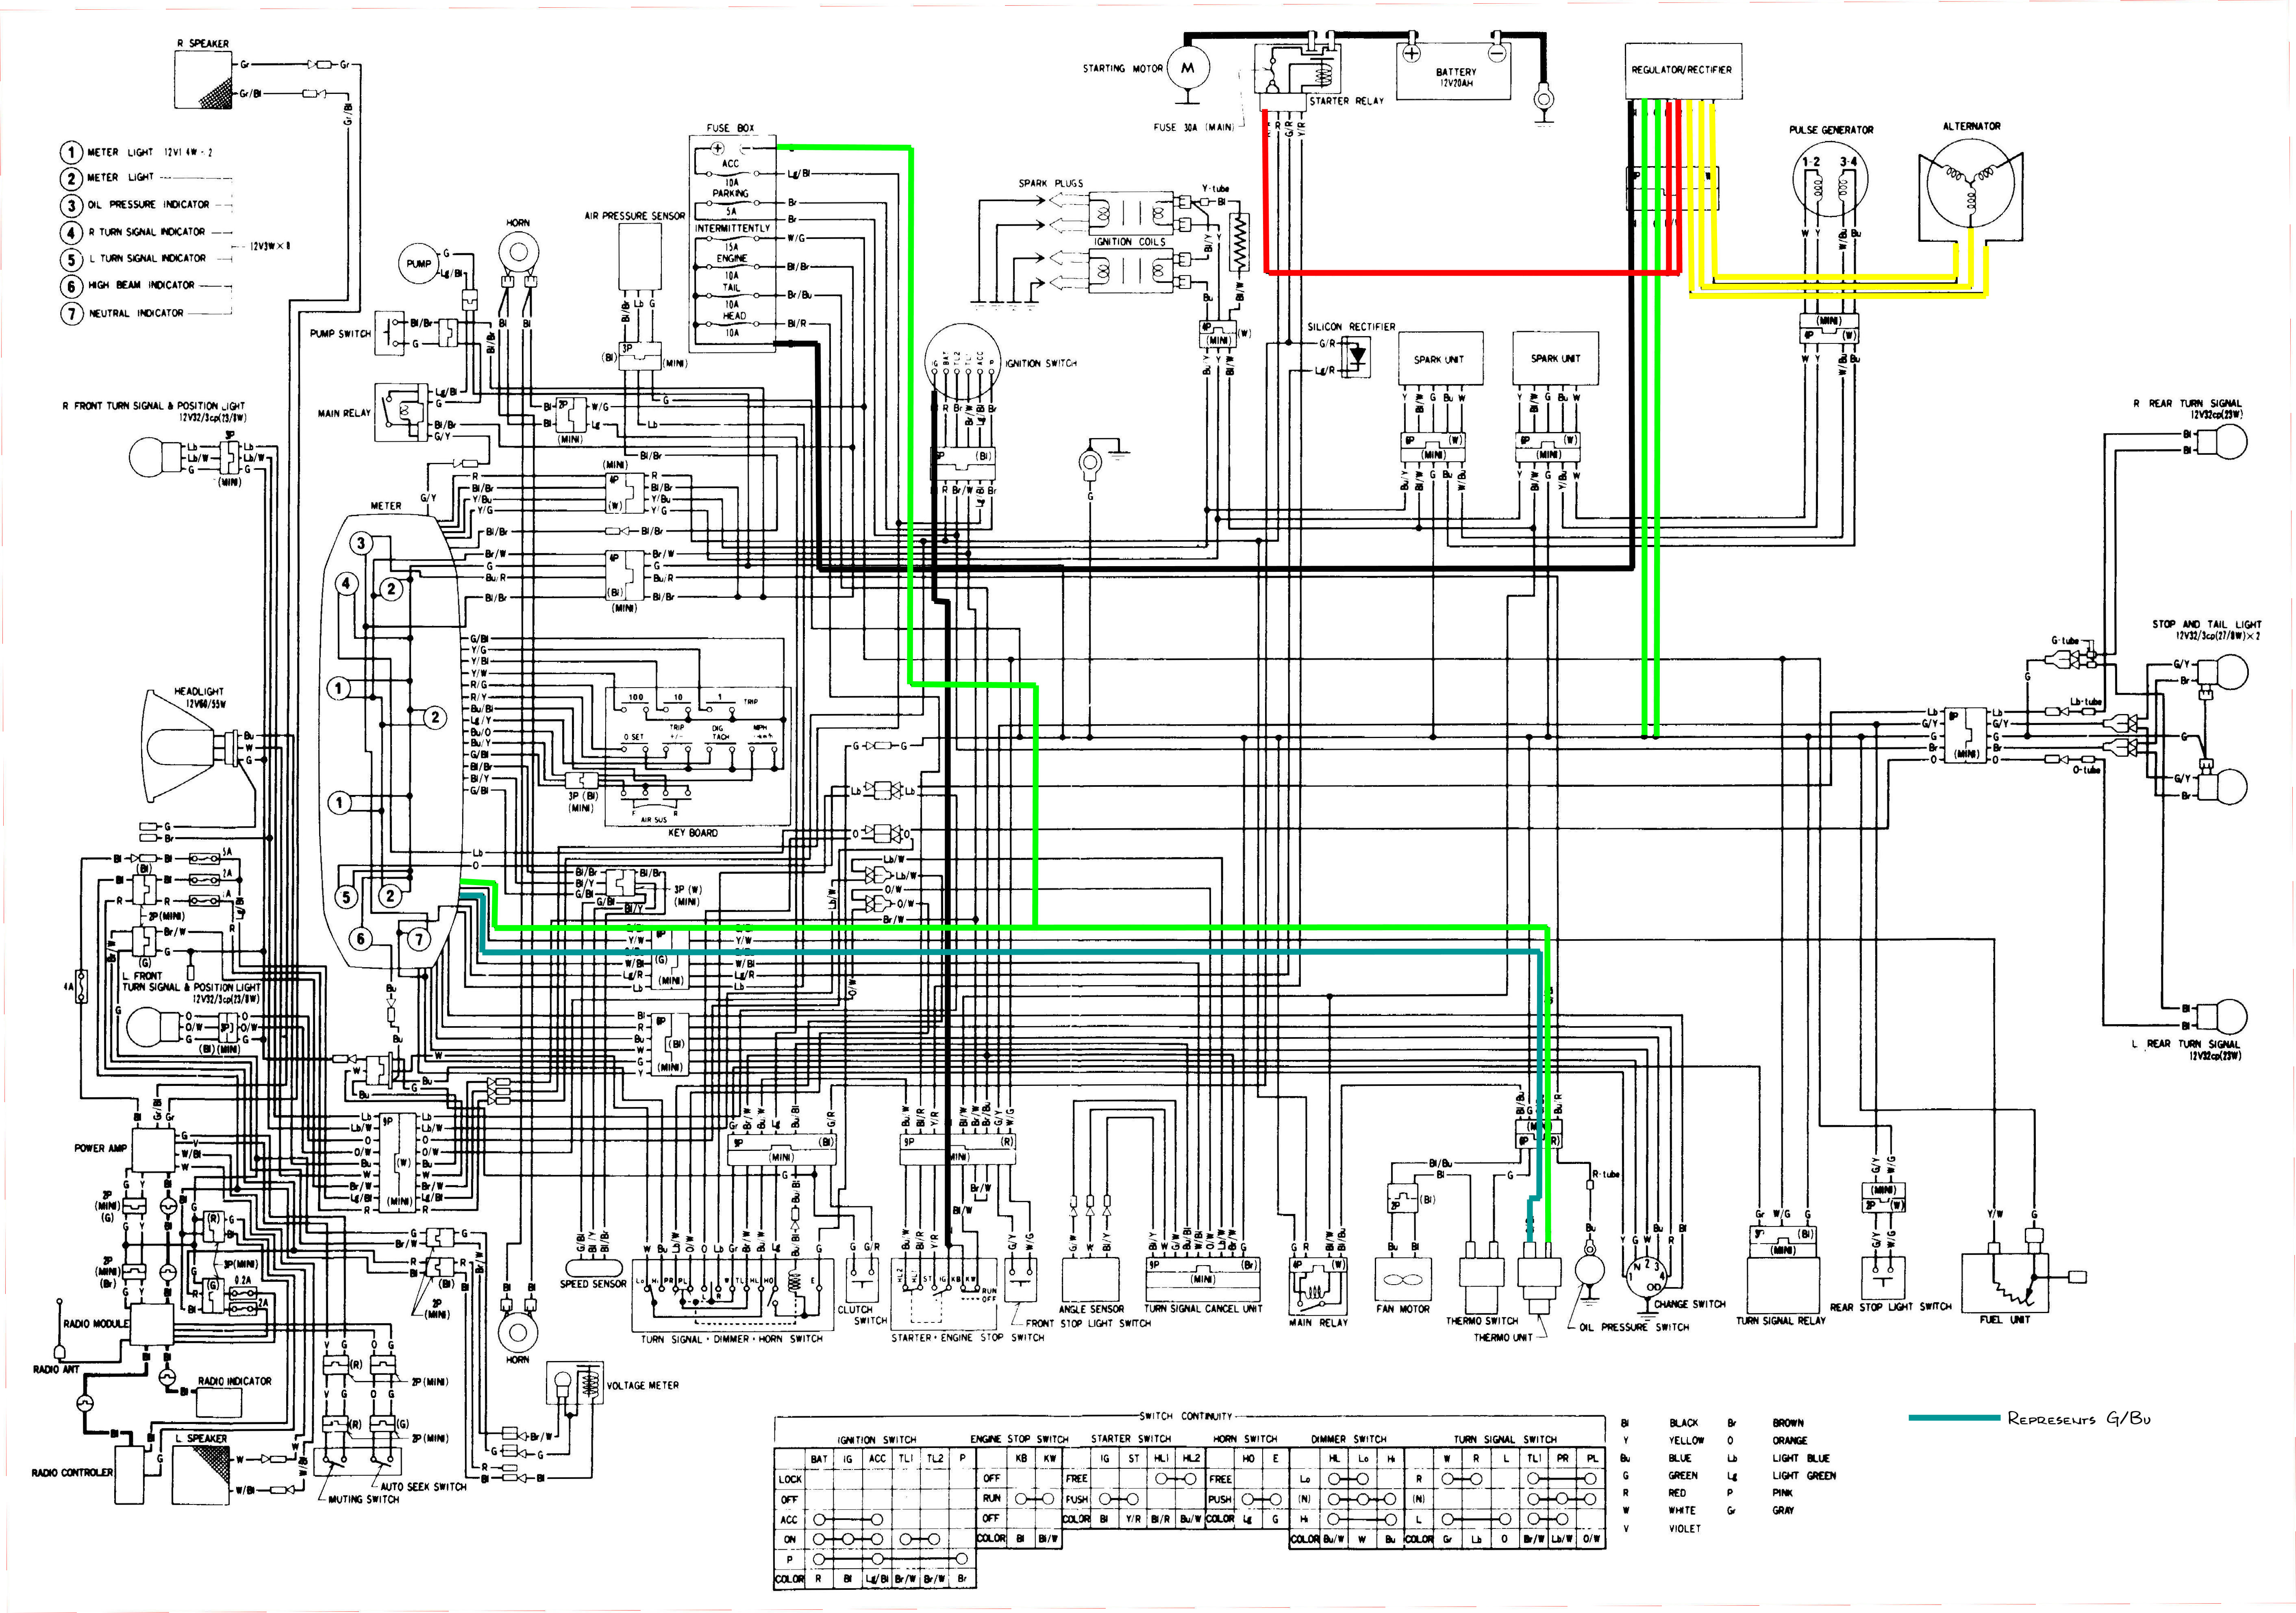 [QMVU_8575]  0E0A Wiring Diagram For 2006 Gl1800 | Wiring Library | 2015 Gl1800 Wiring Diagram |  | Wiring Library